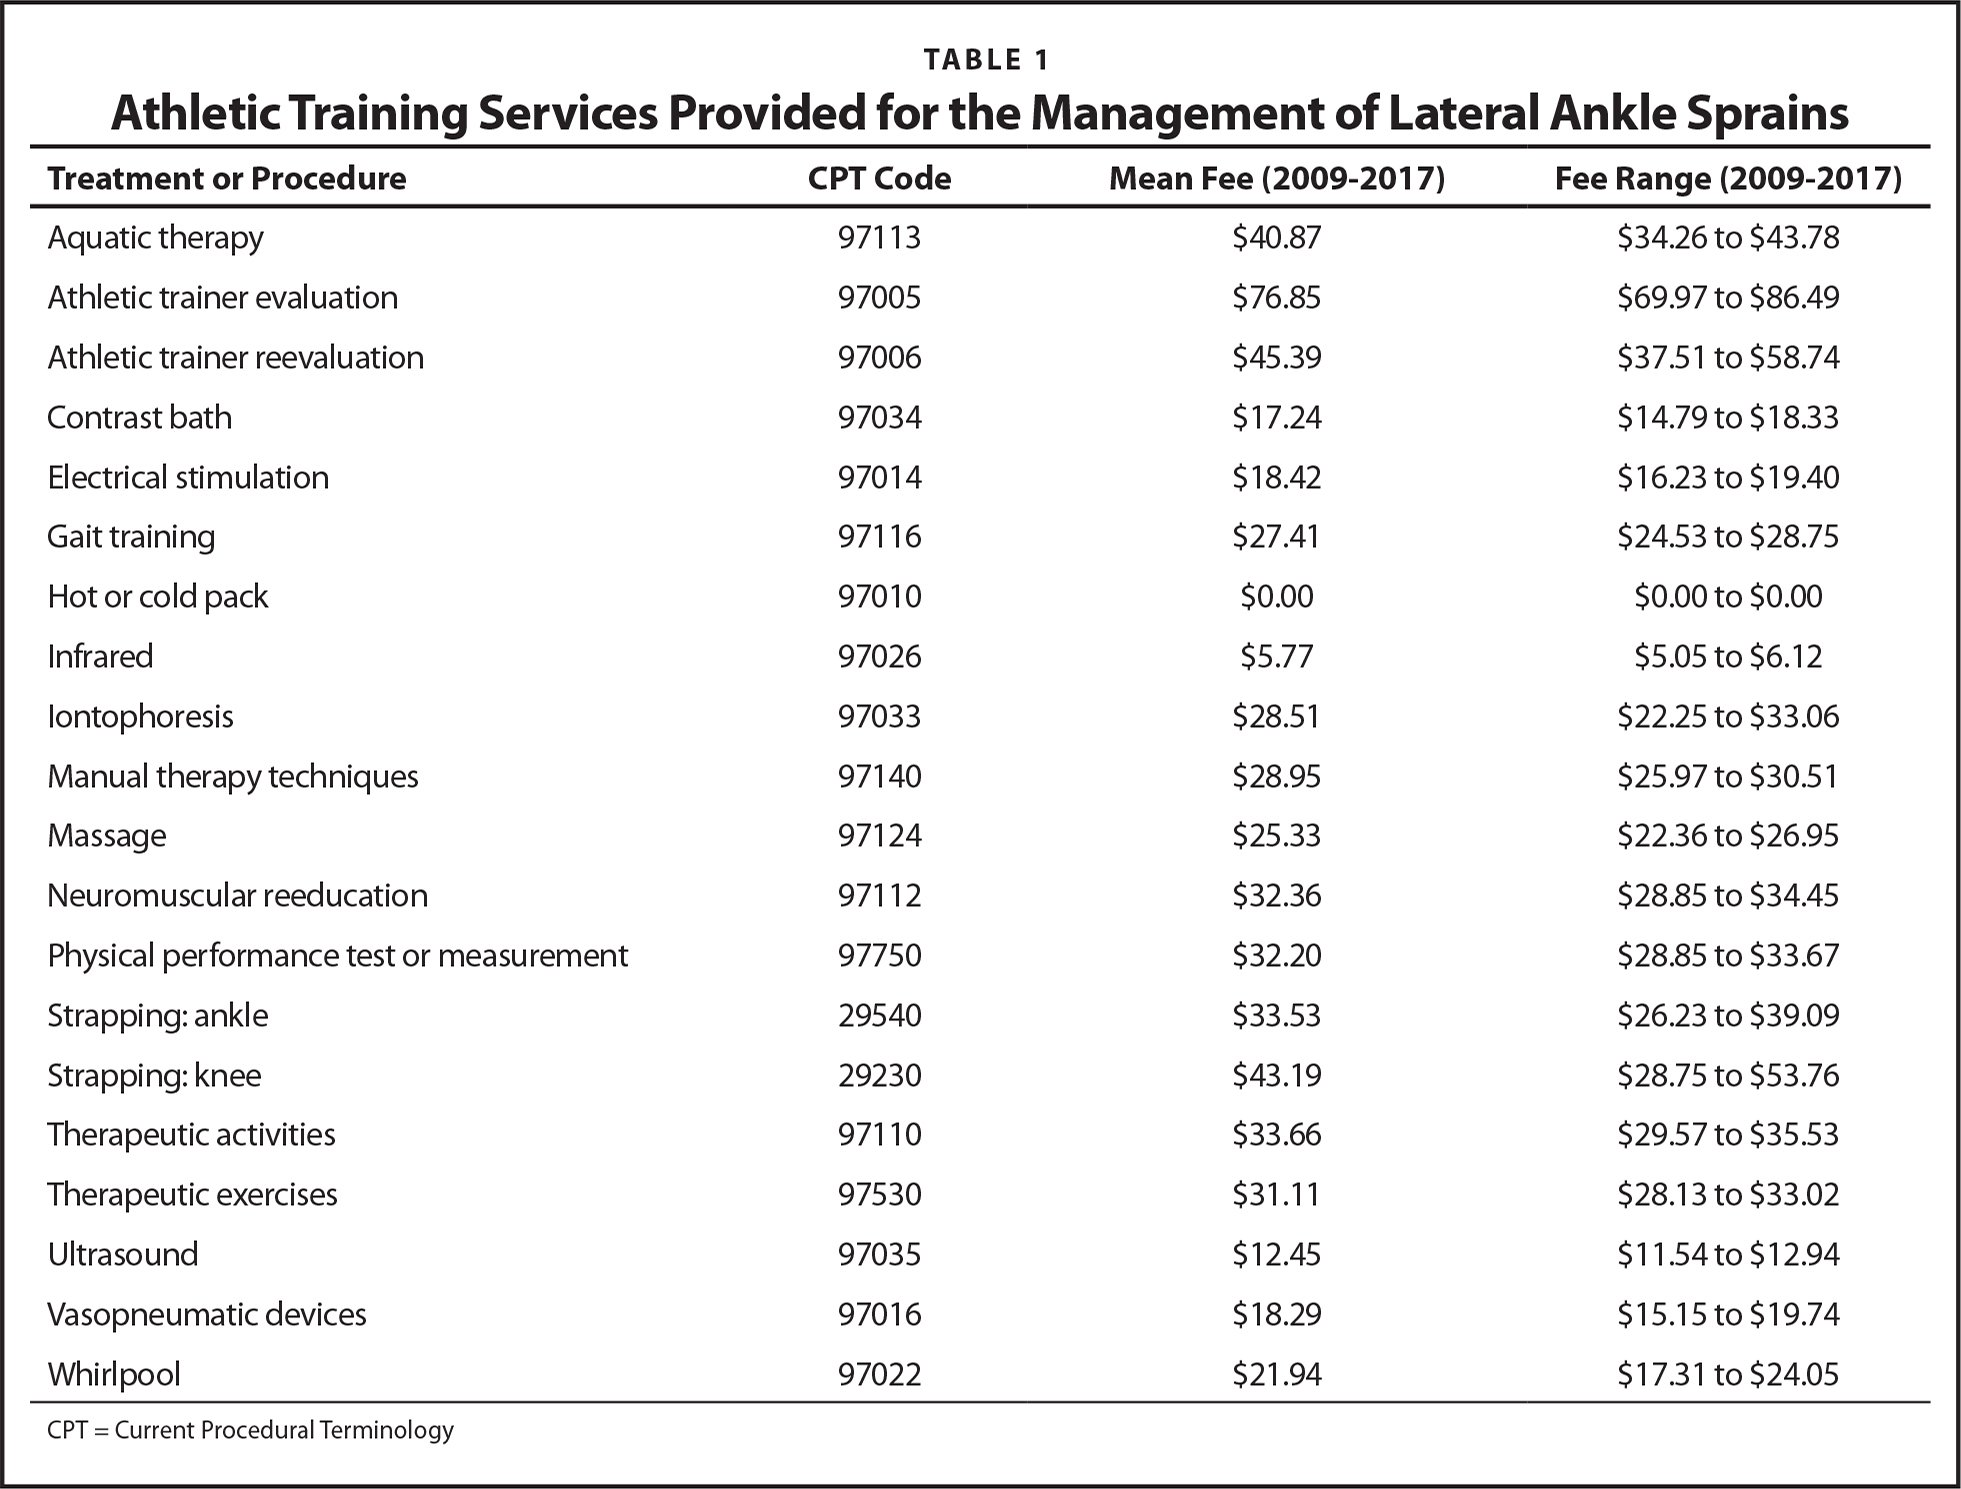 Athletic Training Services Provided for the Management of Lateral Ankle Sprains